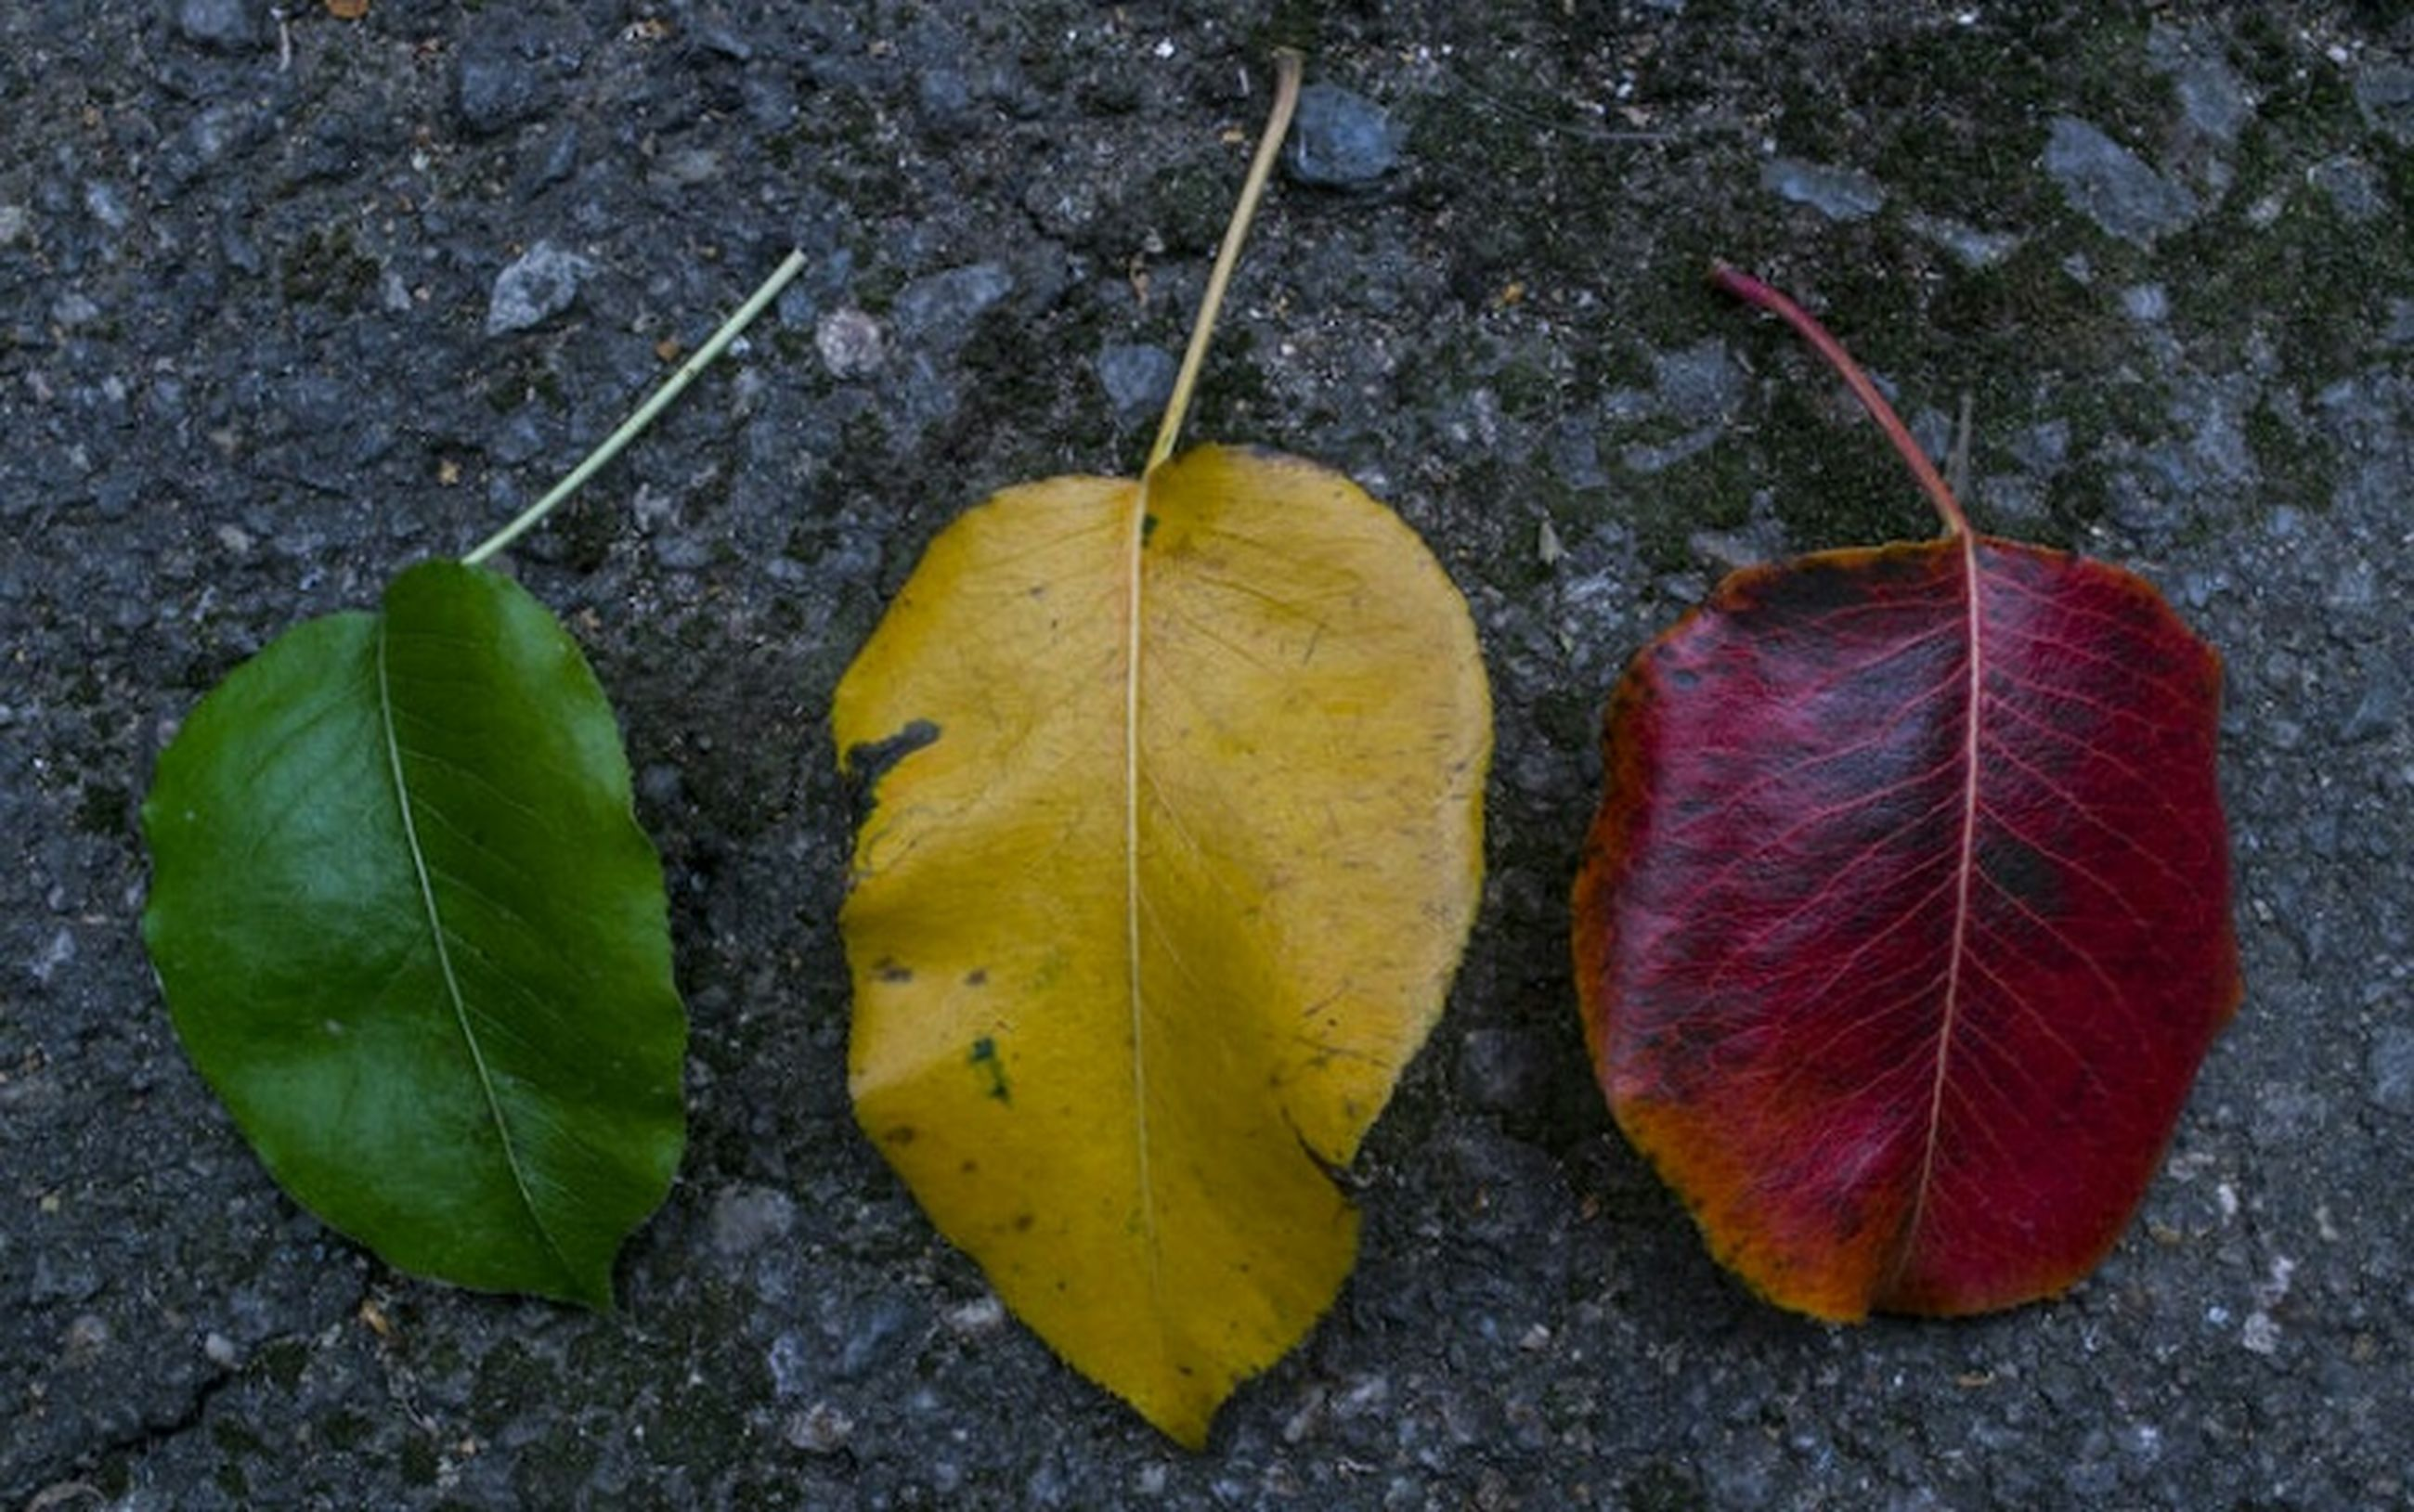 autumn, change, leaf, season, leaf vein, close-up, dry, natural pattern, natural condition, fragility, yellow, vibrant color, ground, red, maple leaf, leaves, nature, group of objects, day, botany, green color, outdoors, tranquility, footpath, no people